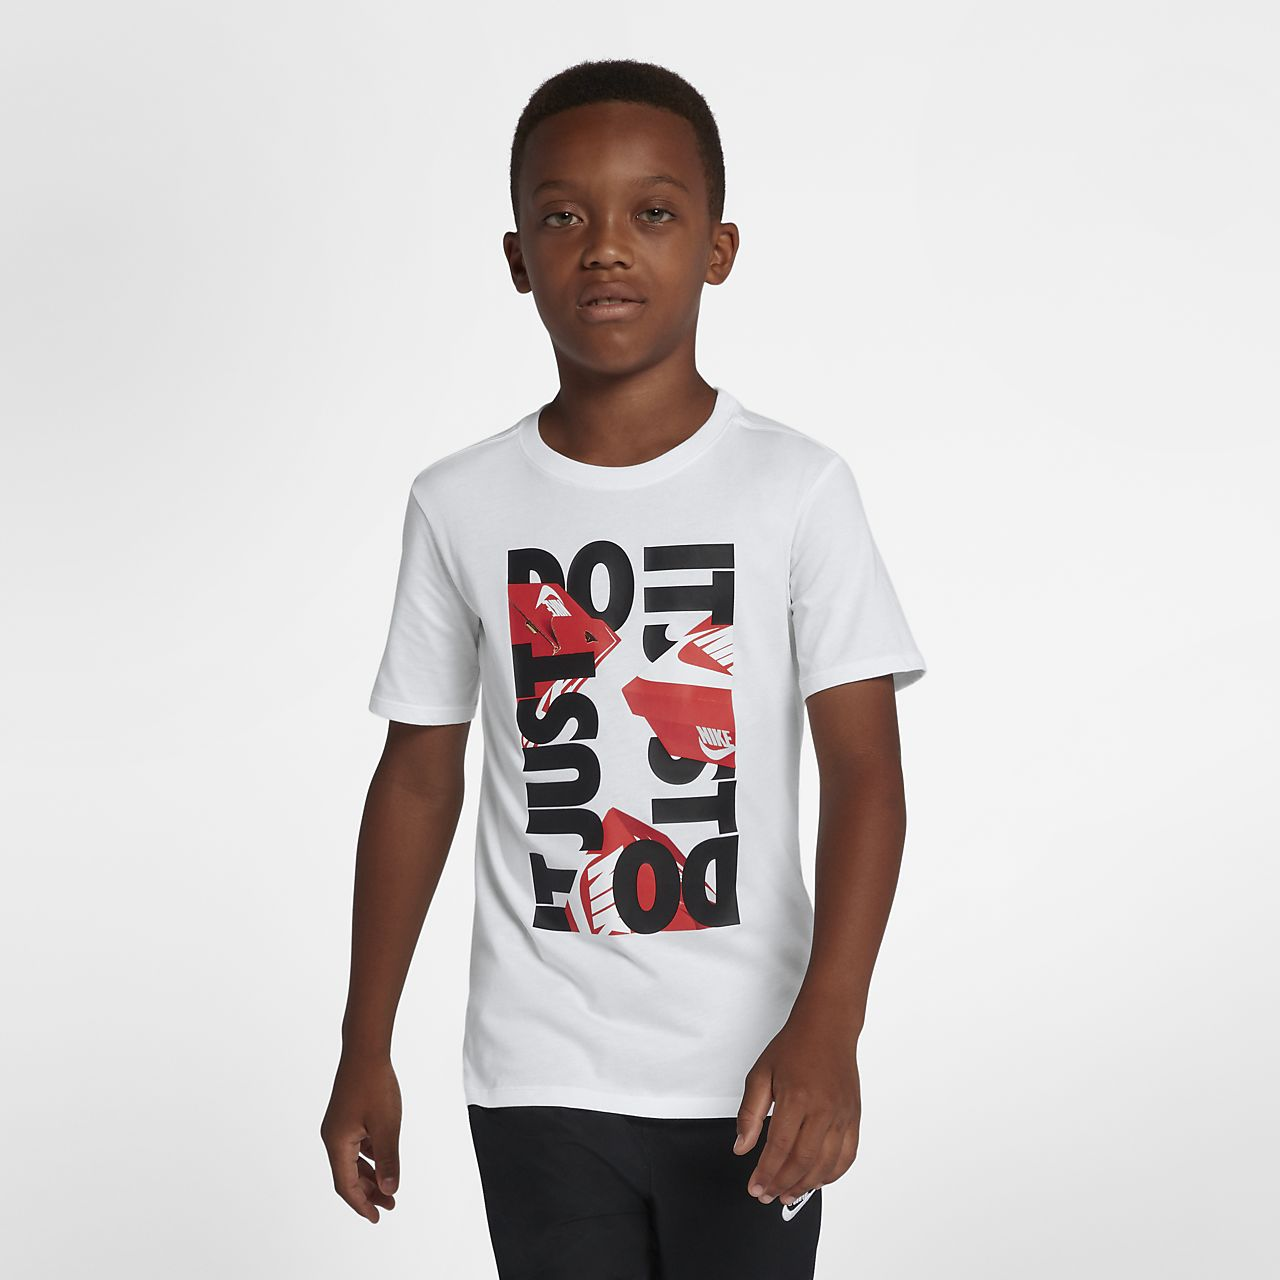 Nike Sportswear Just Do It-T-Shirt für ältere Kinder (Jungen)